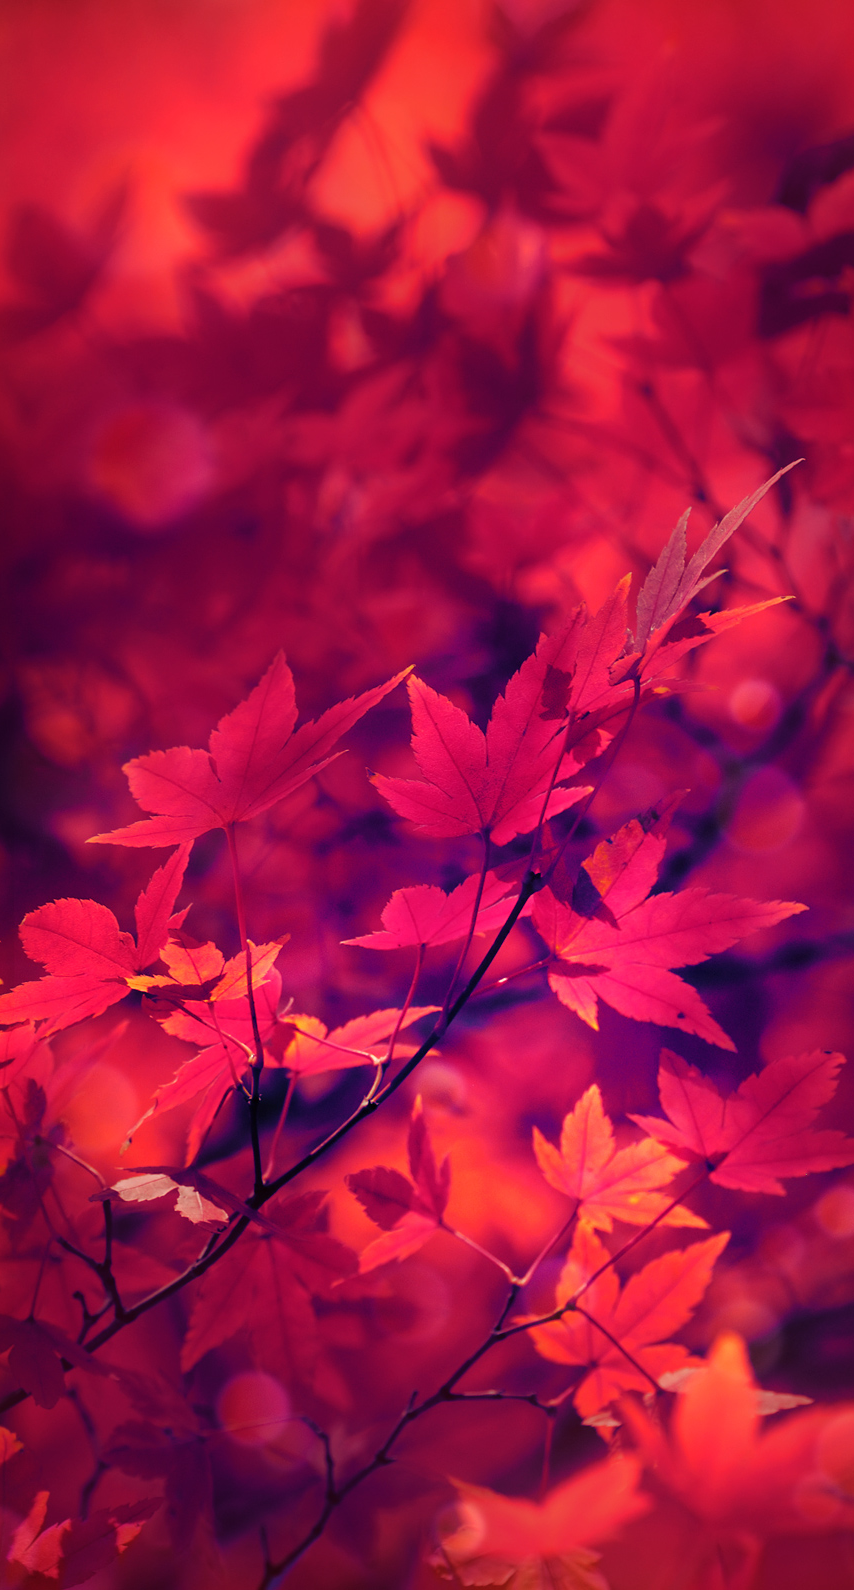 beautiful, leaves, leaf, abstract, fall